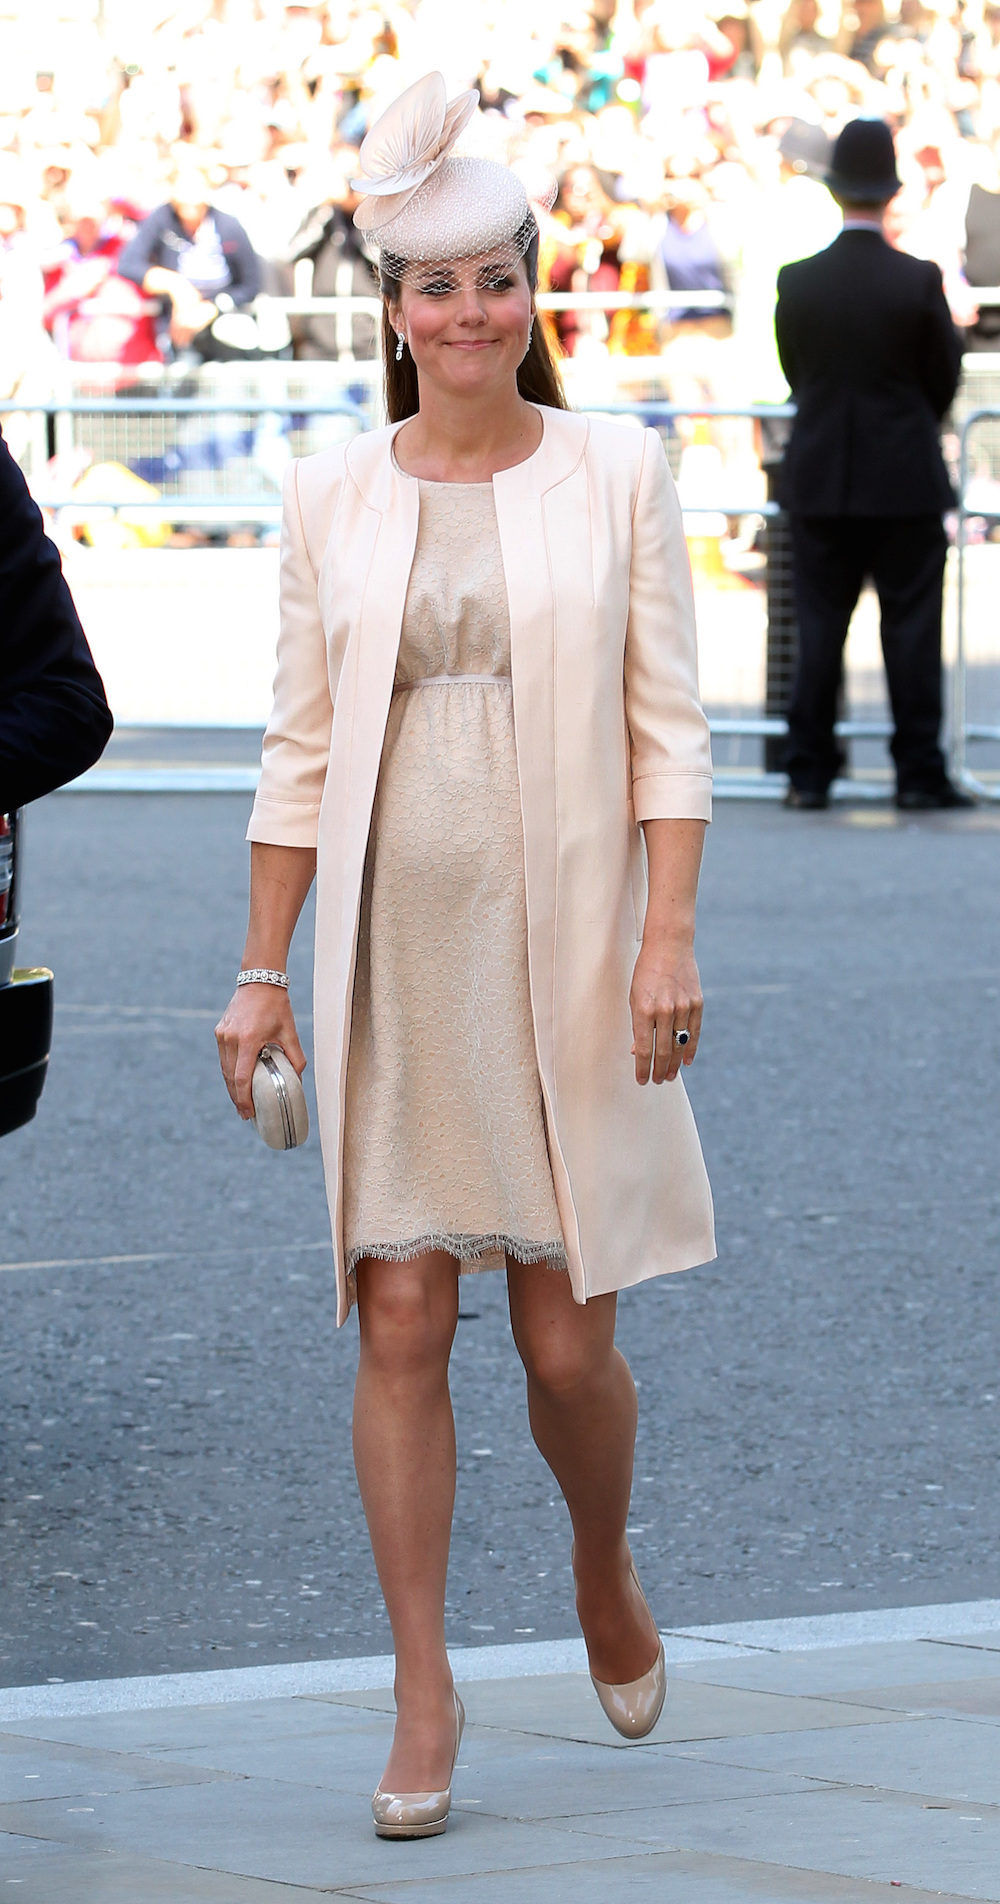 Kate arrives at Westminster Abbey in June 2013